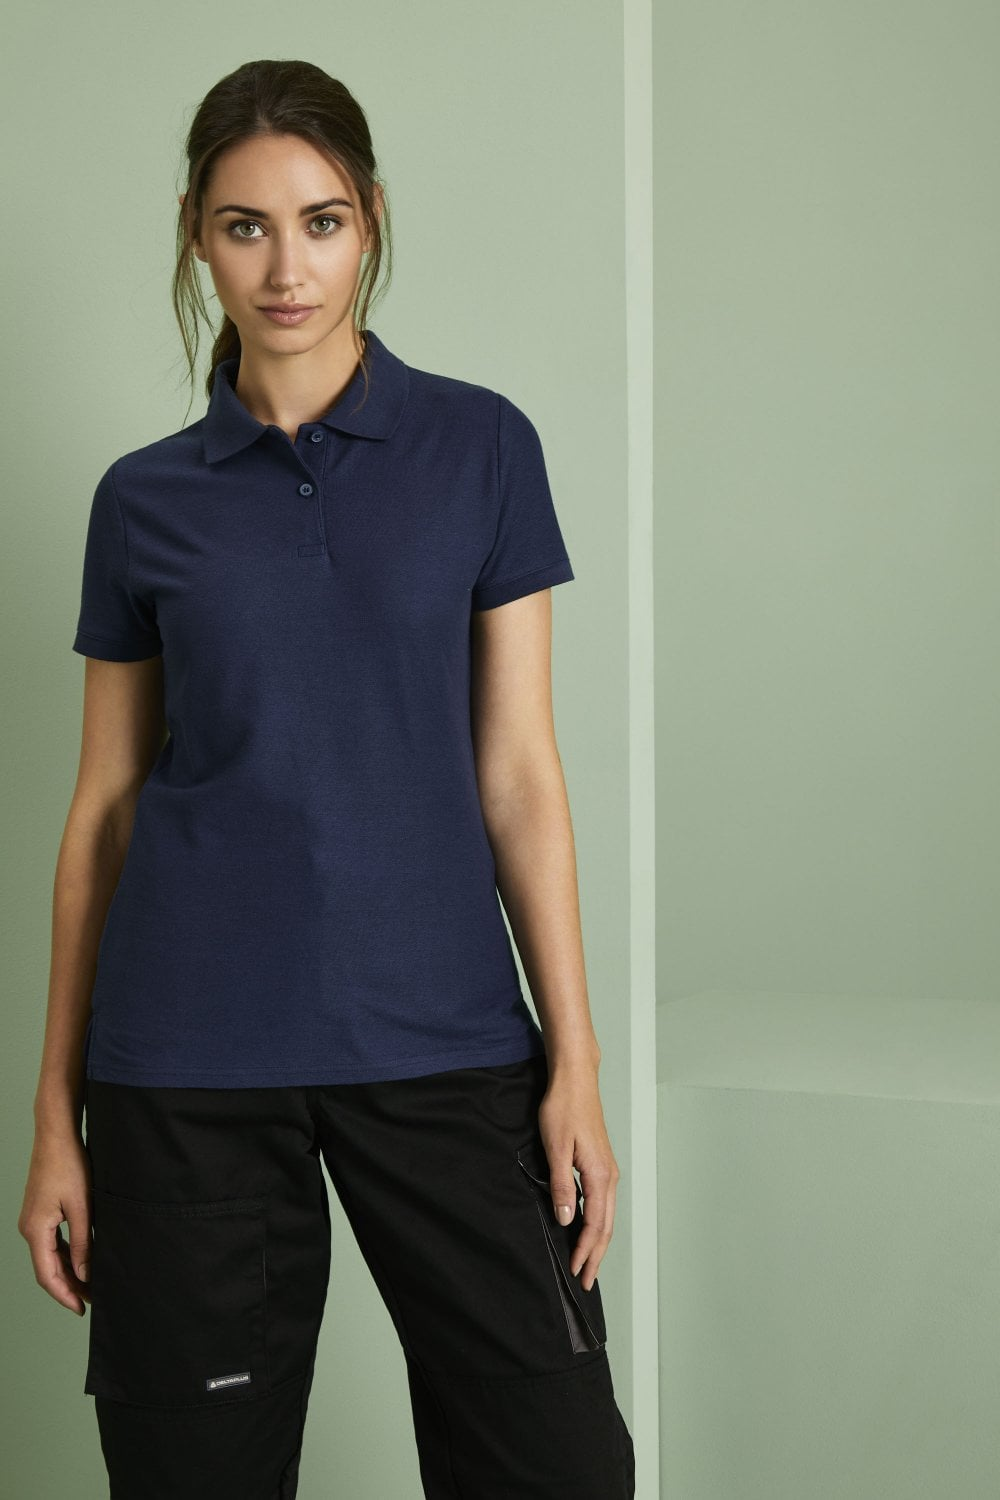 ca3f5a64 Fruit of the Loom Lady-fit 65/35 Polo at www.simonjersey.com. We have a  wide range of great value uniform workwear Polos and T-Shirts available for  ...